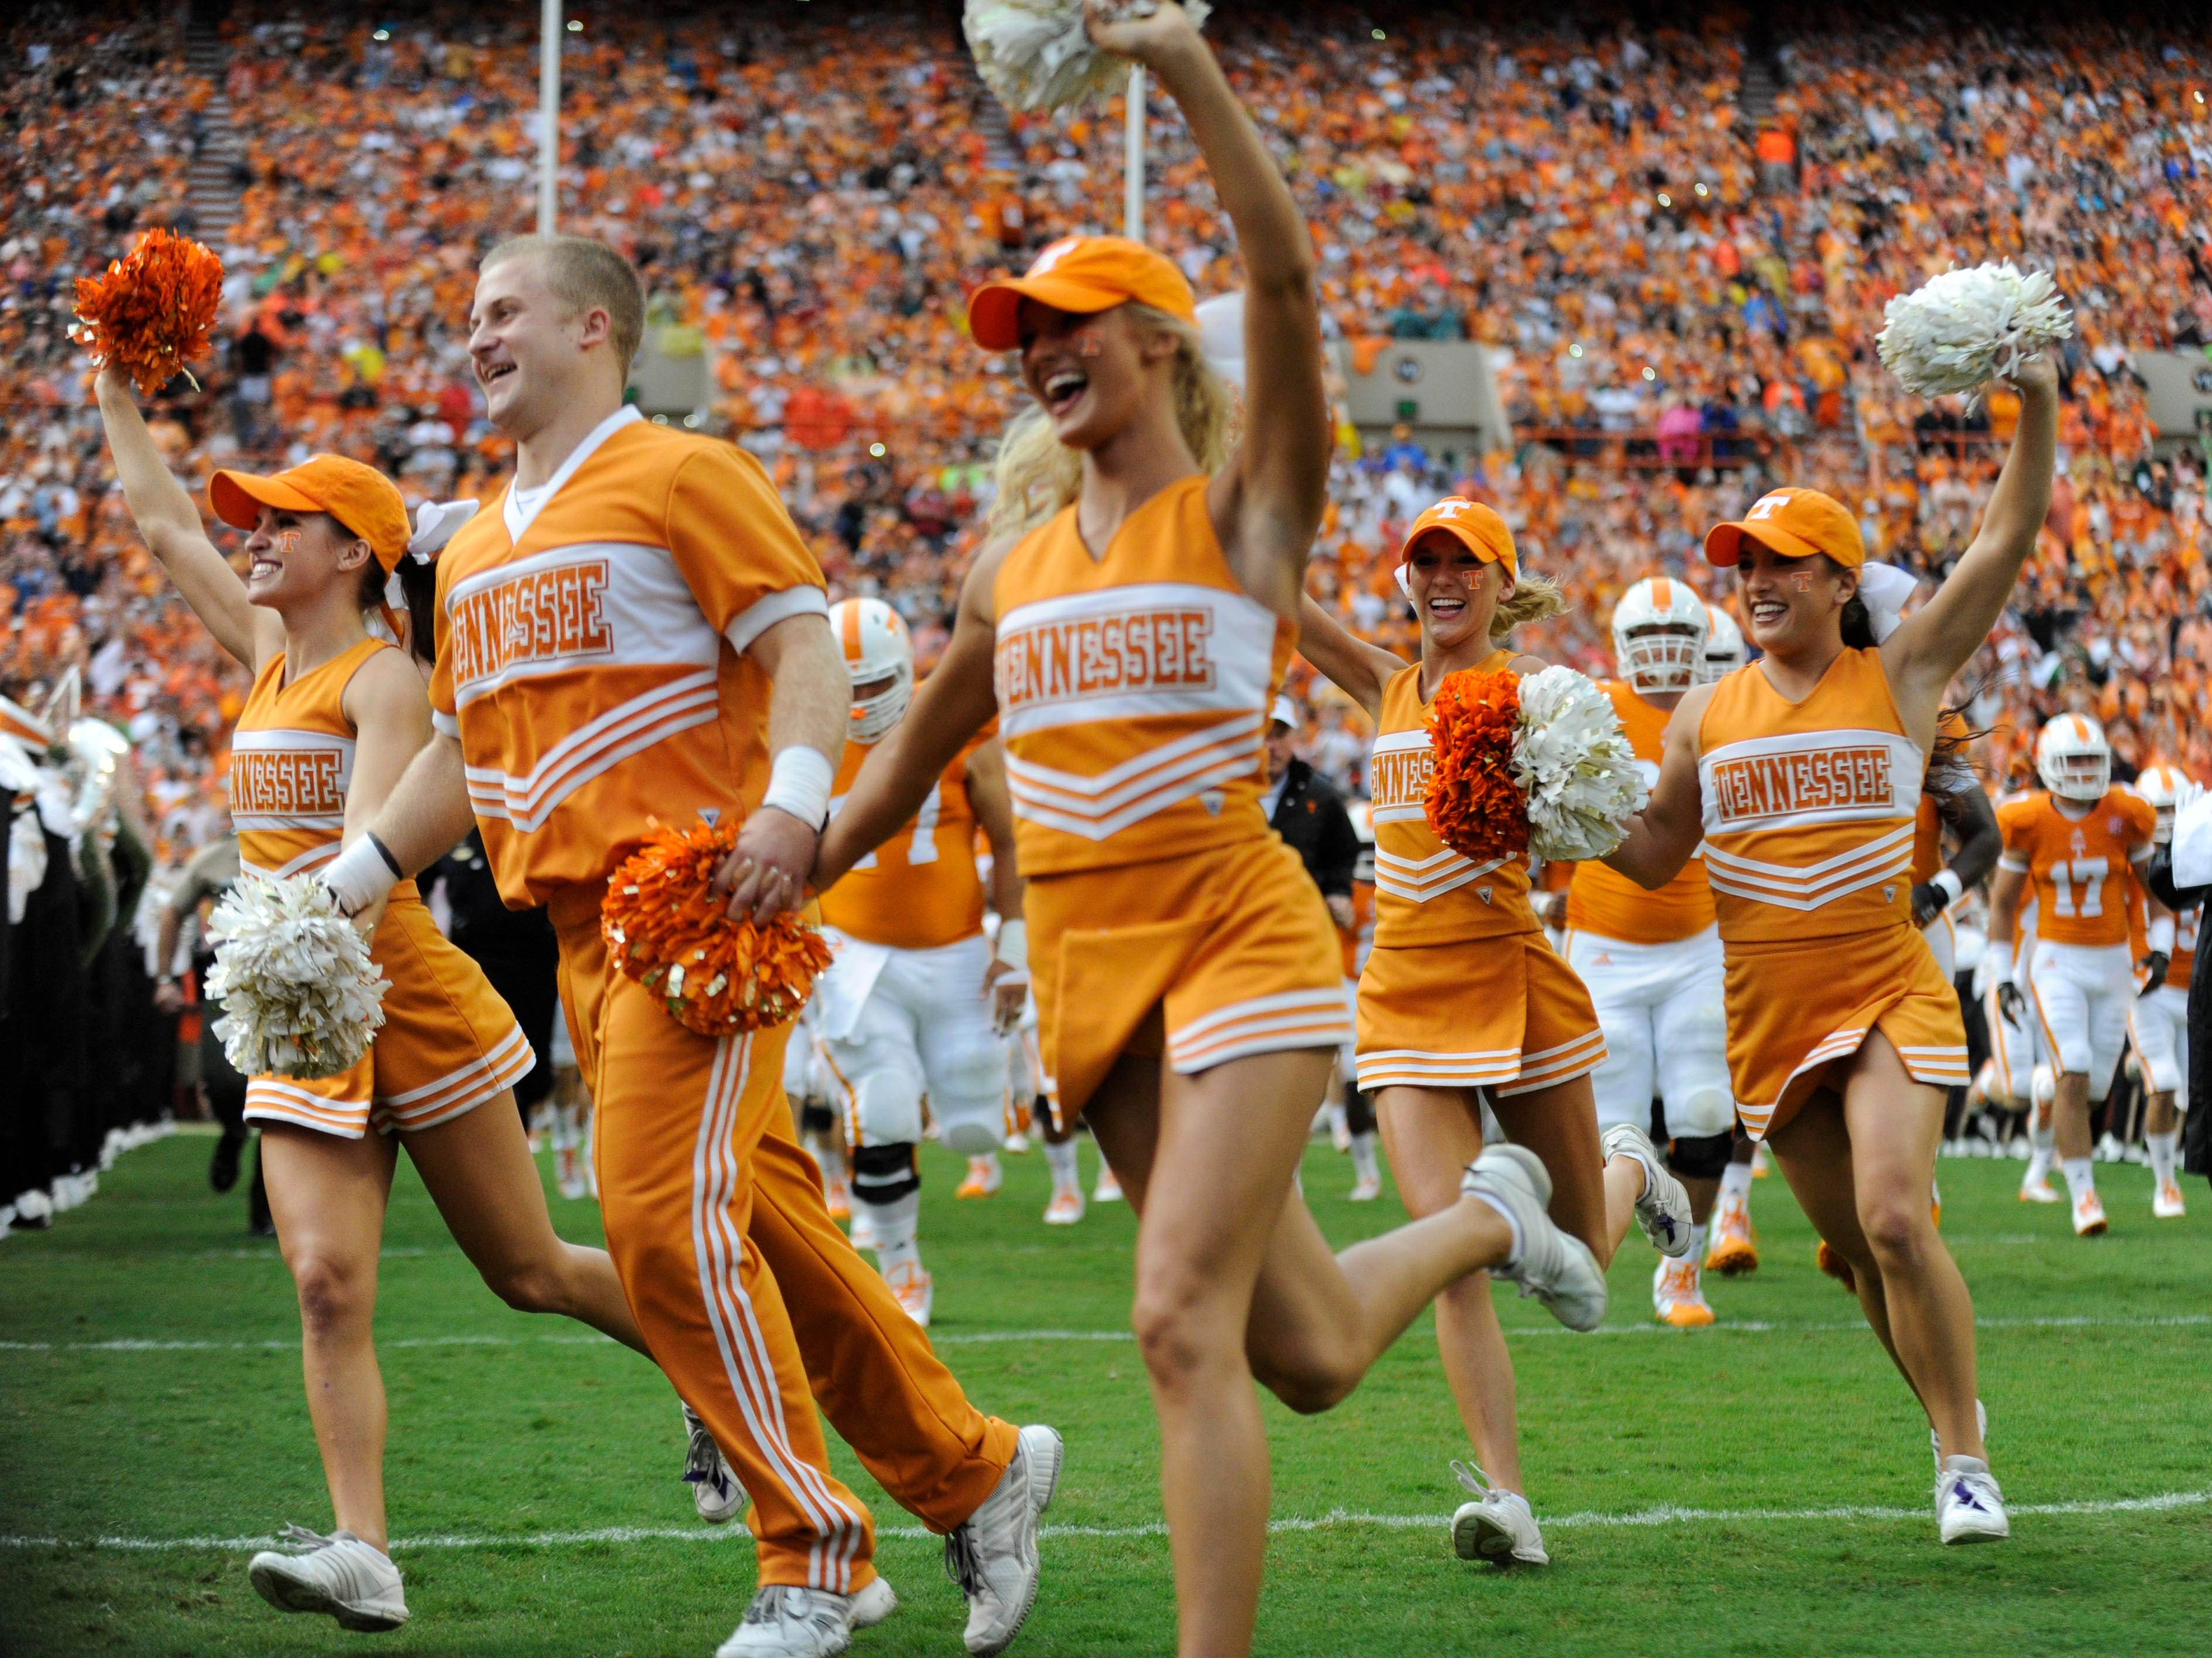 Tennessee cheerleaders take the field before the game against Utah State at Neyland Stadium, Sunday, Aug. 31, 2014 in Knoxville, Tenn.